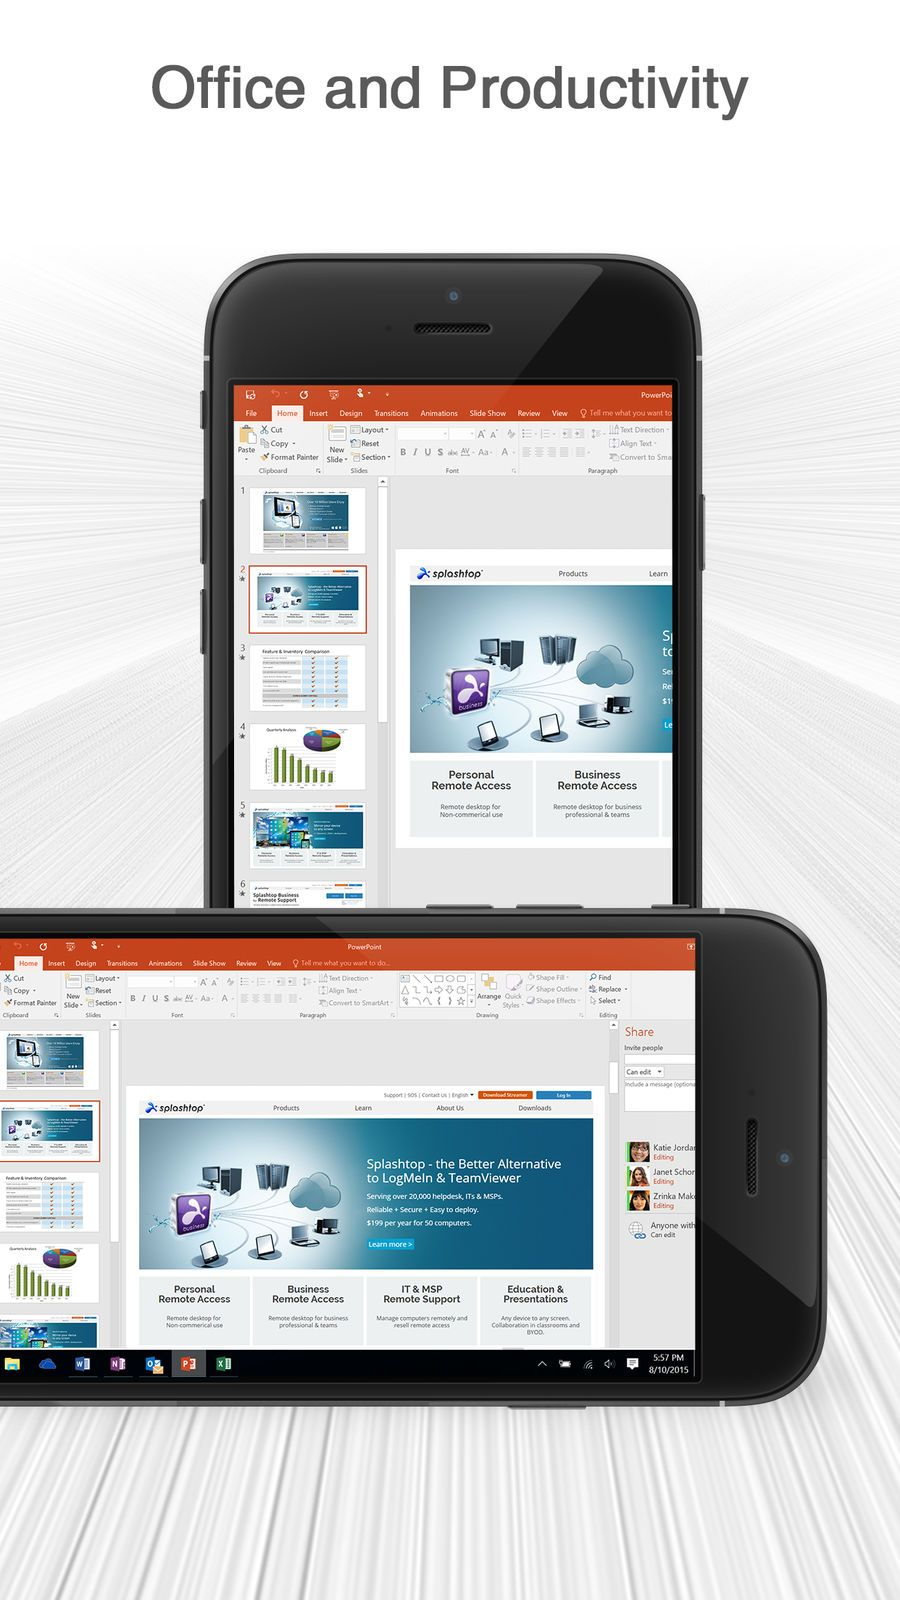 Splashtop Personal for iPhone iosProductivityappapps